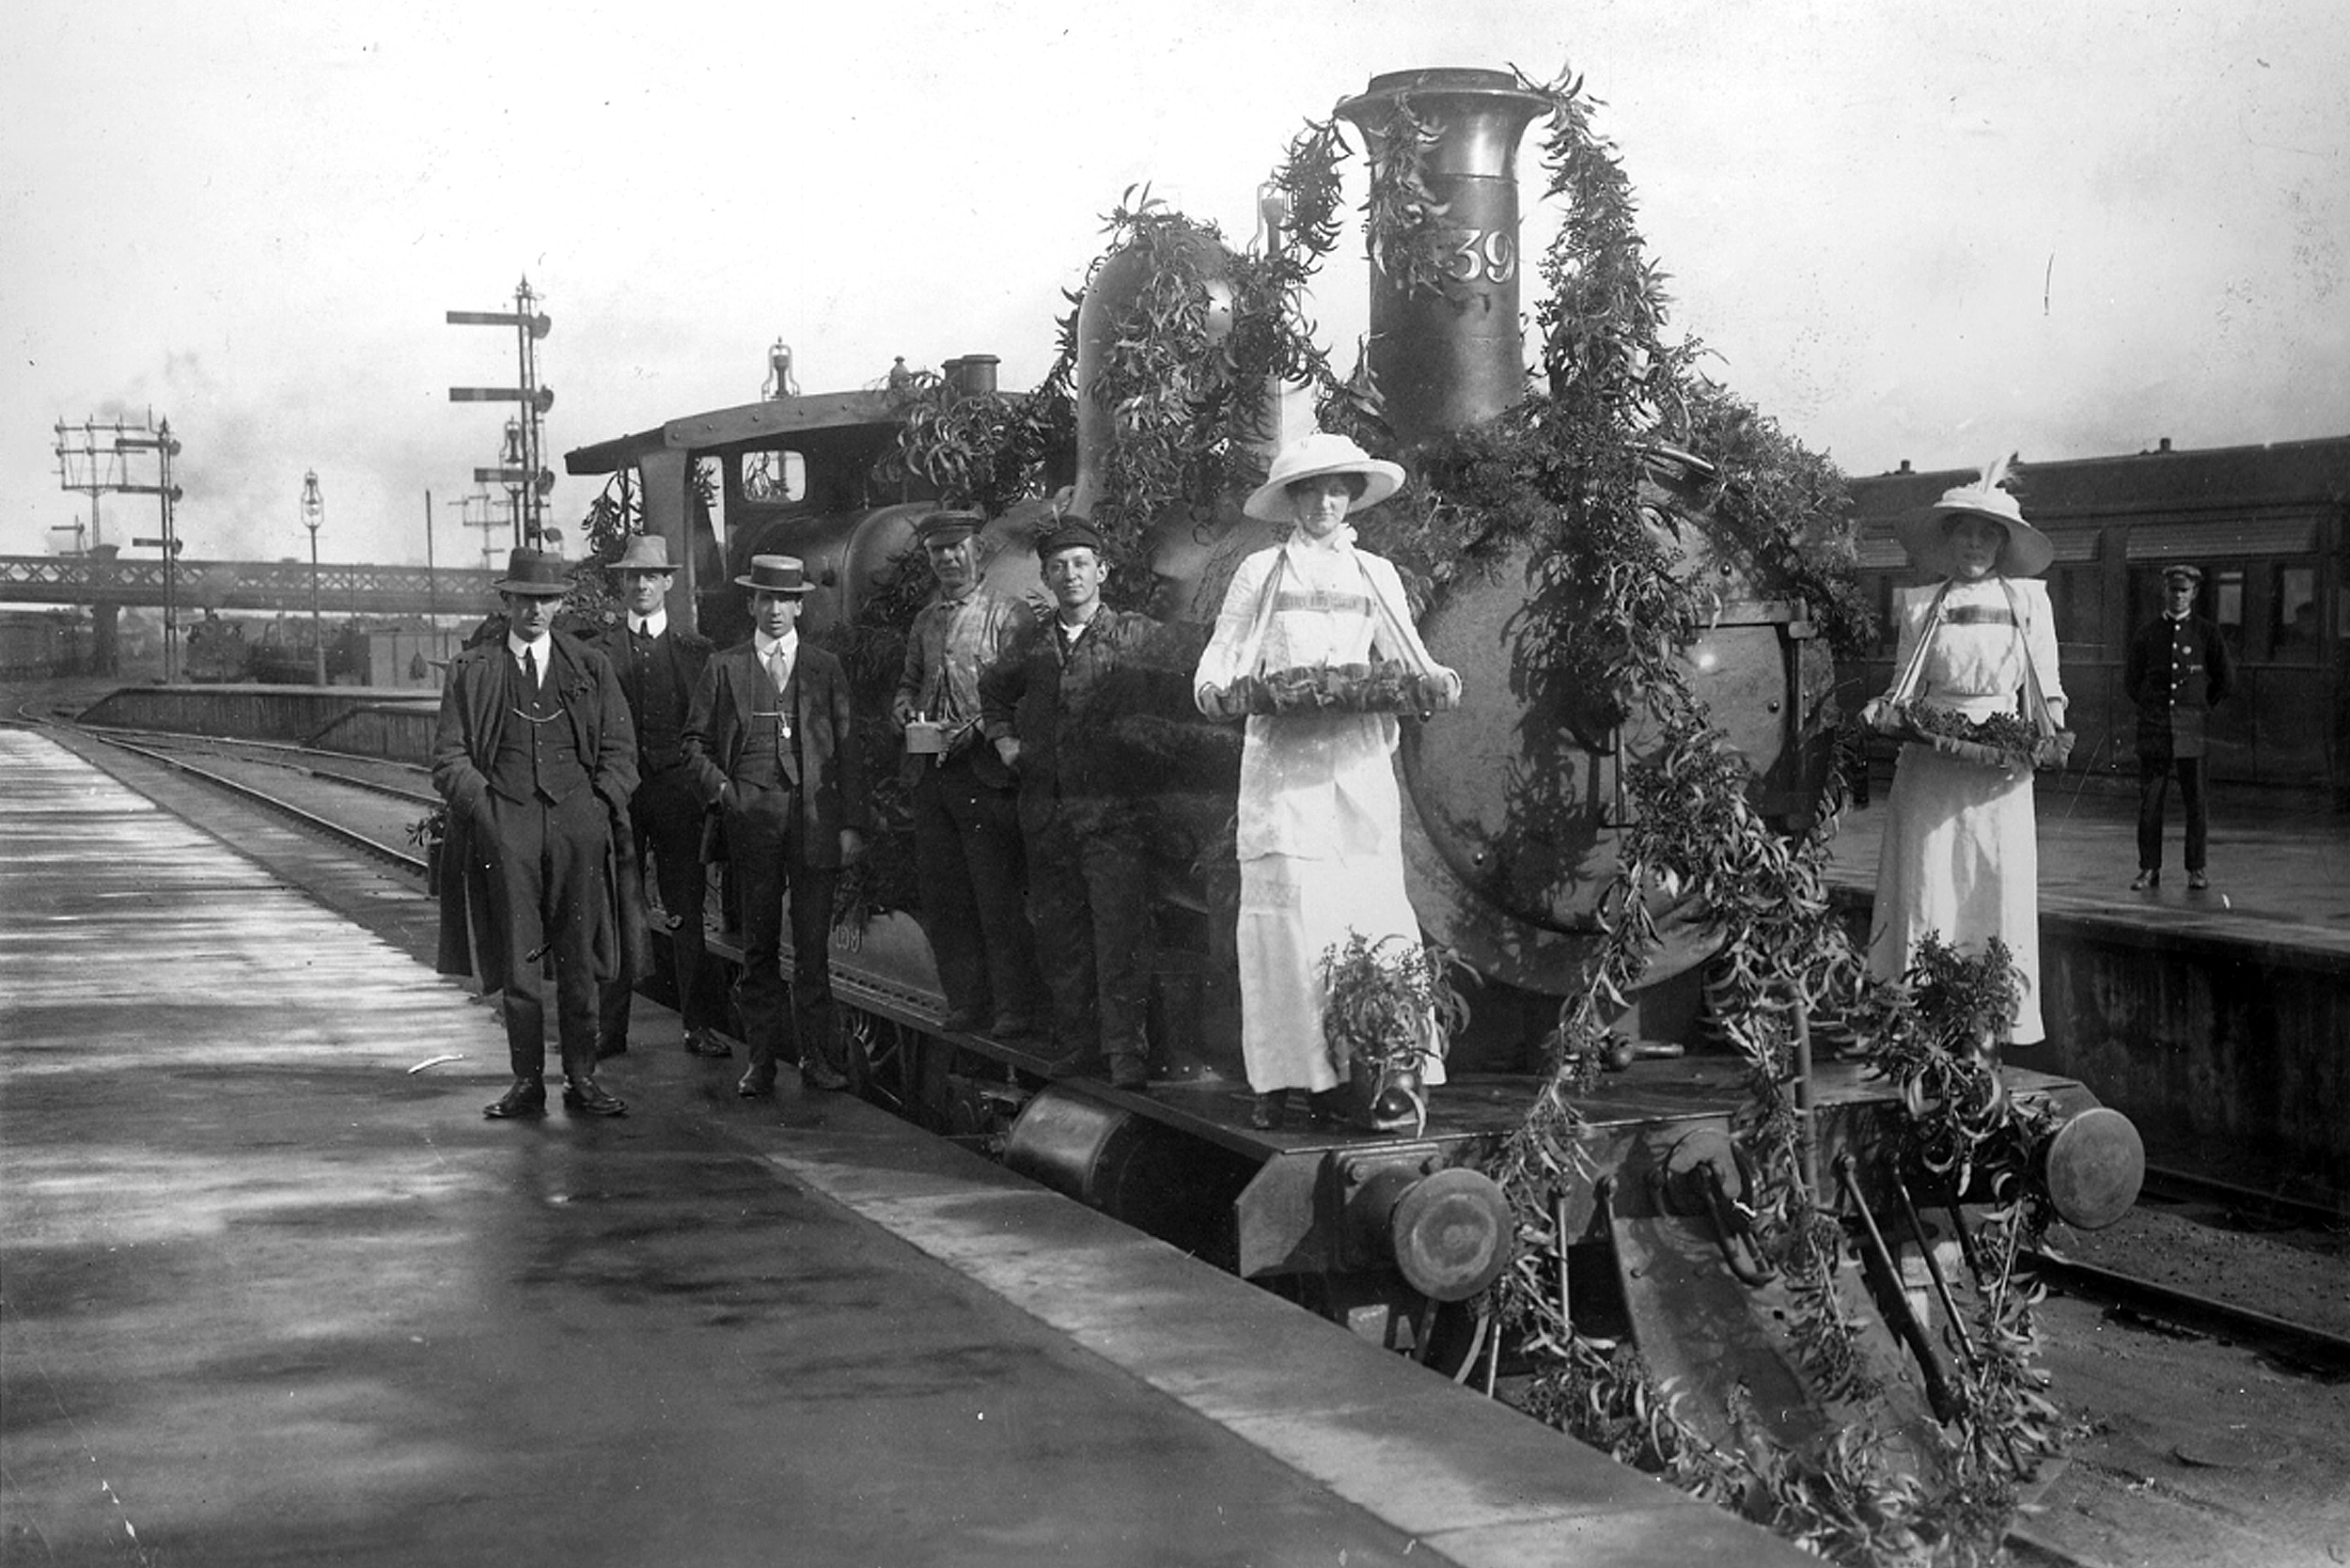 Wattle badge sellers with a locomotive decorated with wattle for Wattle Day, Adelaide, 1913. Image courtesy of the State Library of South Australia, PRG 280/1/7/249.